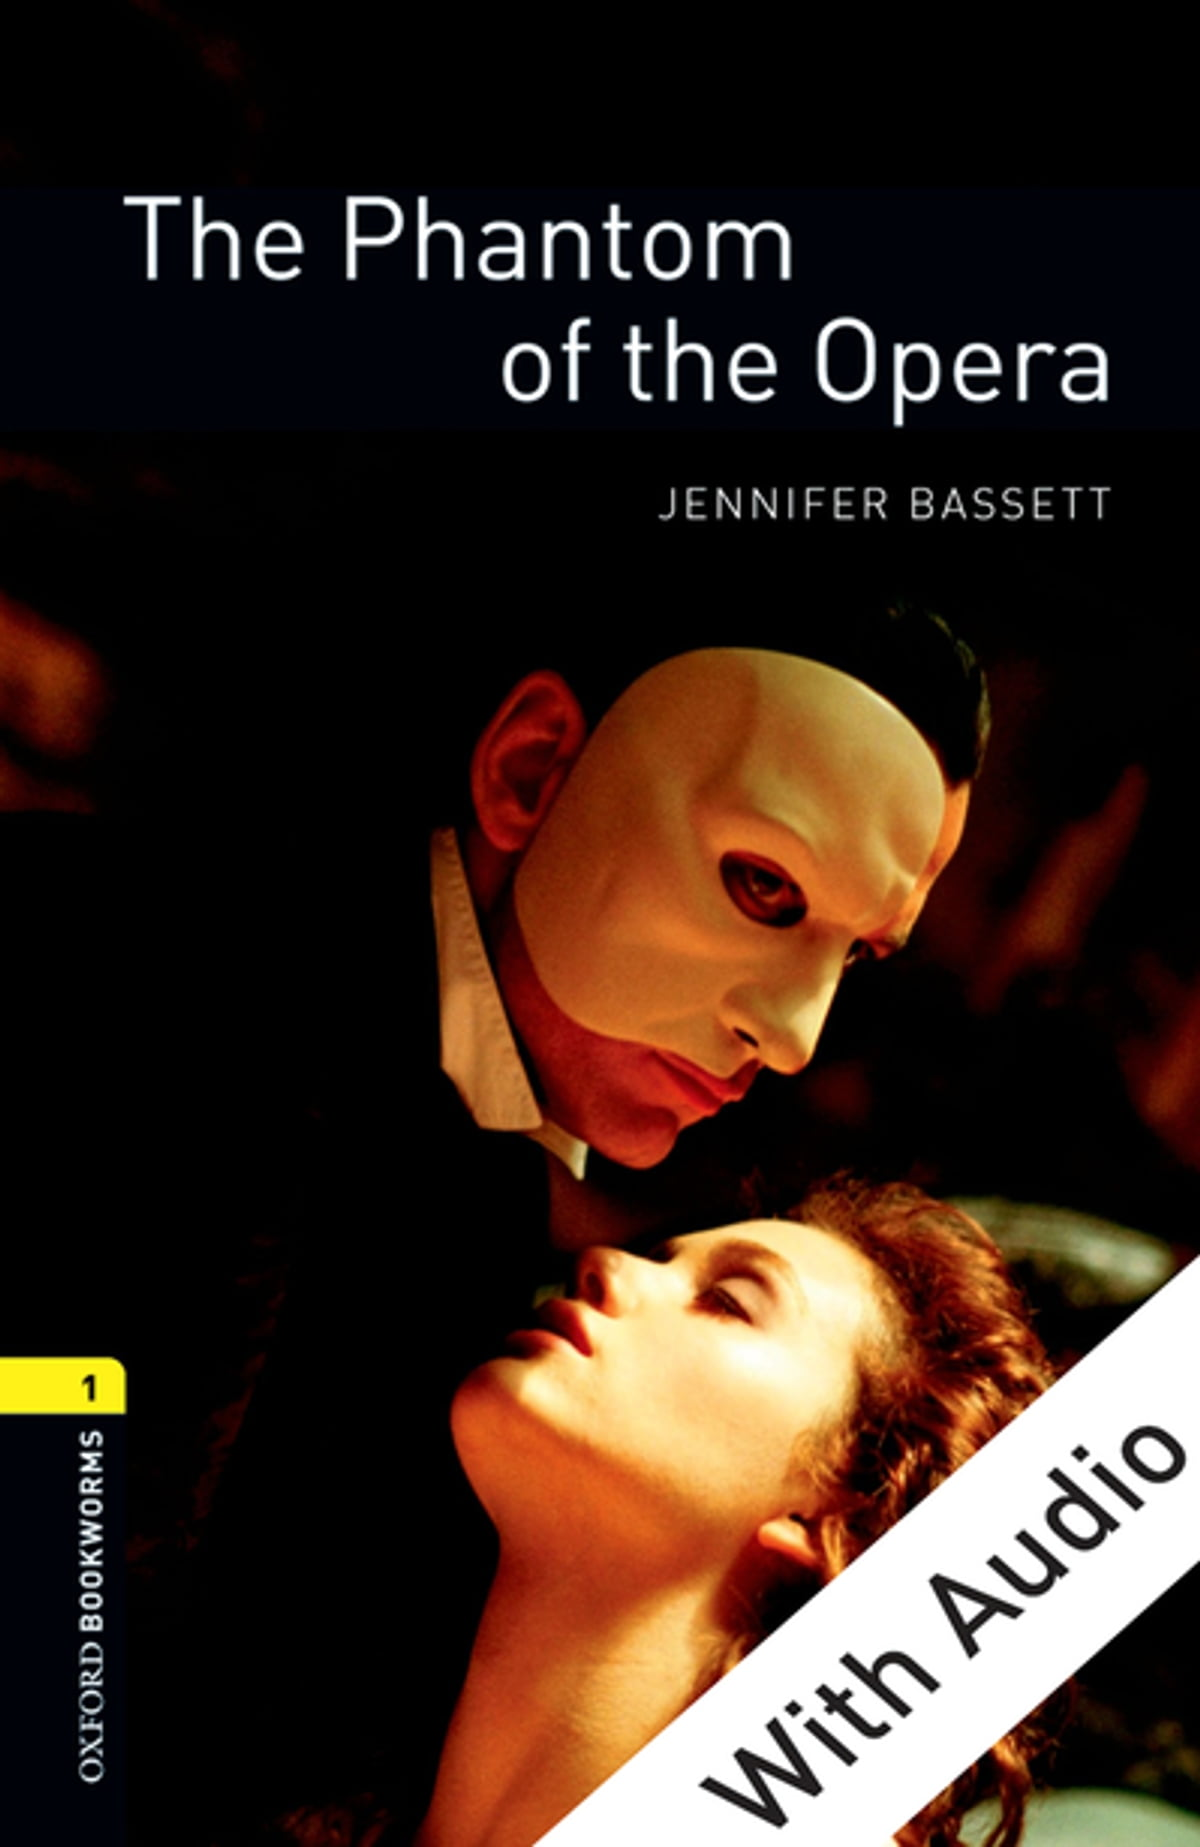 Oxford Bookworms Library The Phantom Of The Opera With Audio Level 1 Oxford